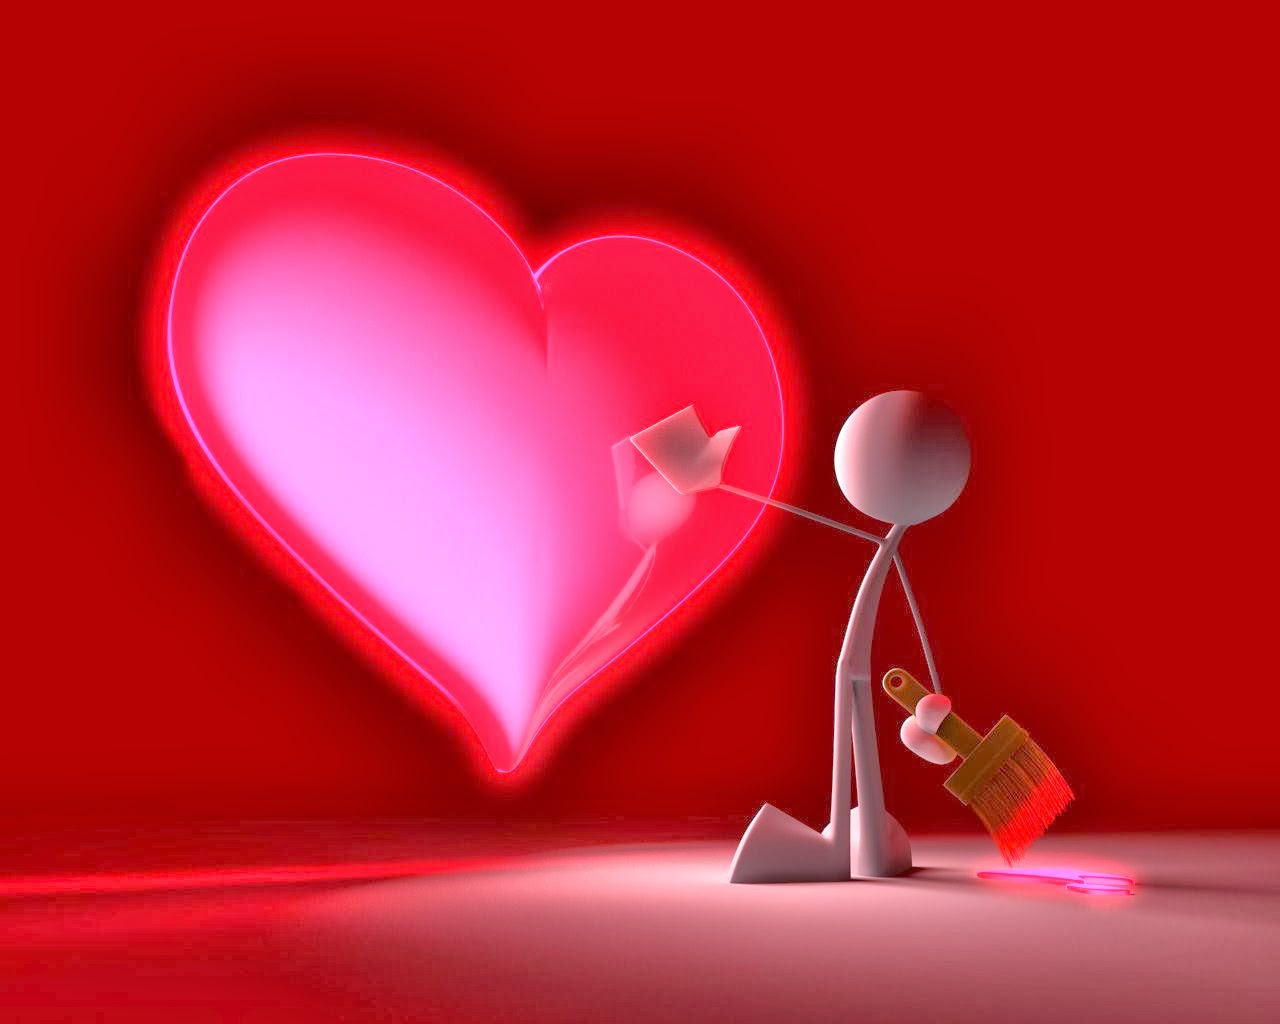 Valentine Day Wallpapers Backgrounds Love Quotes Wallpaper Windows 7 1280x1024